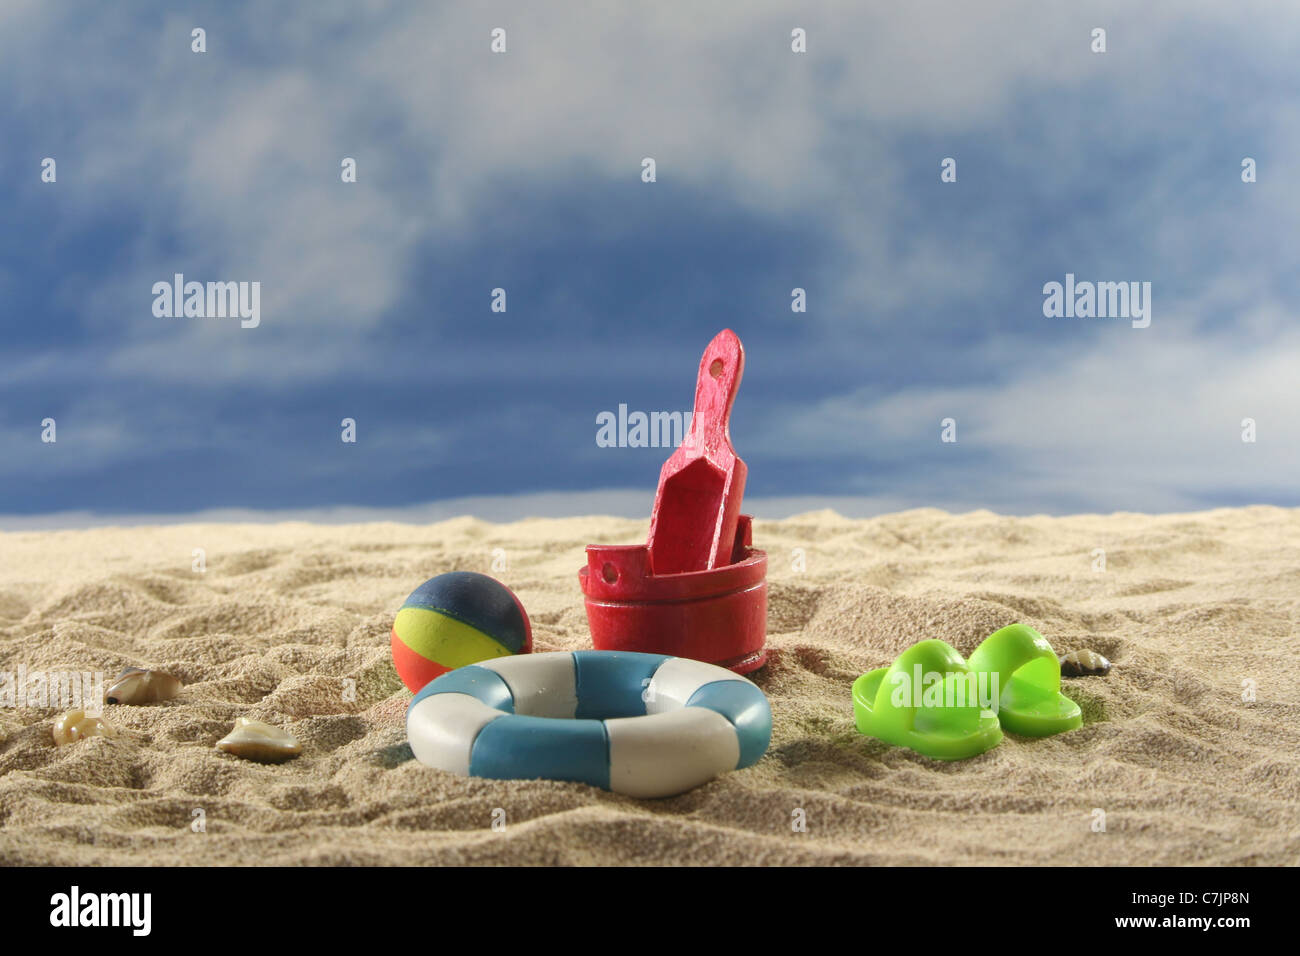 Toy with water polo and swimming ring on the beach Stock Photo